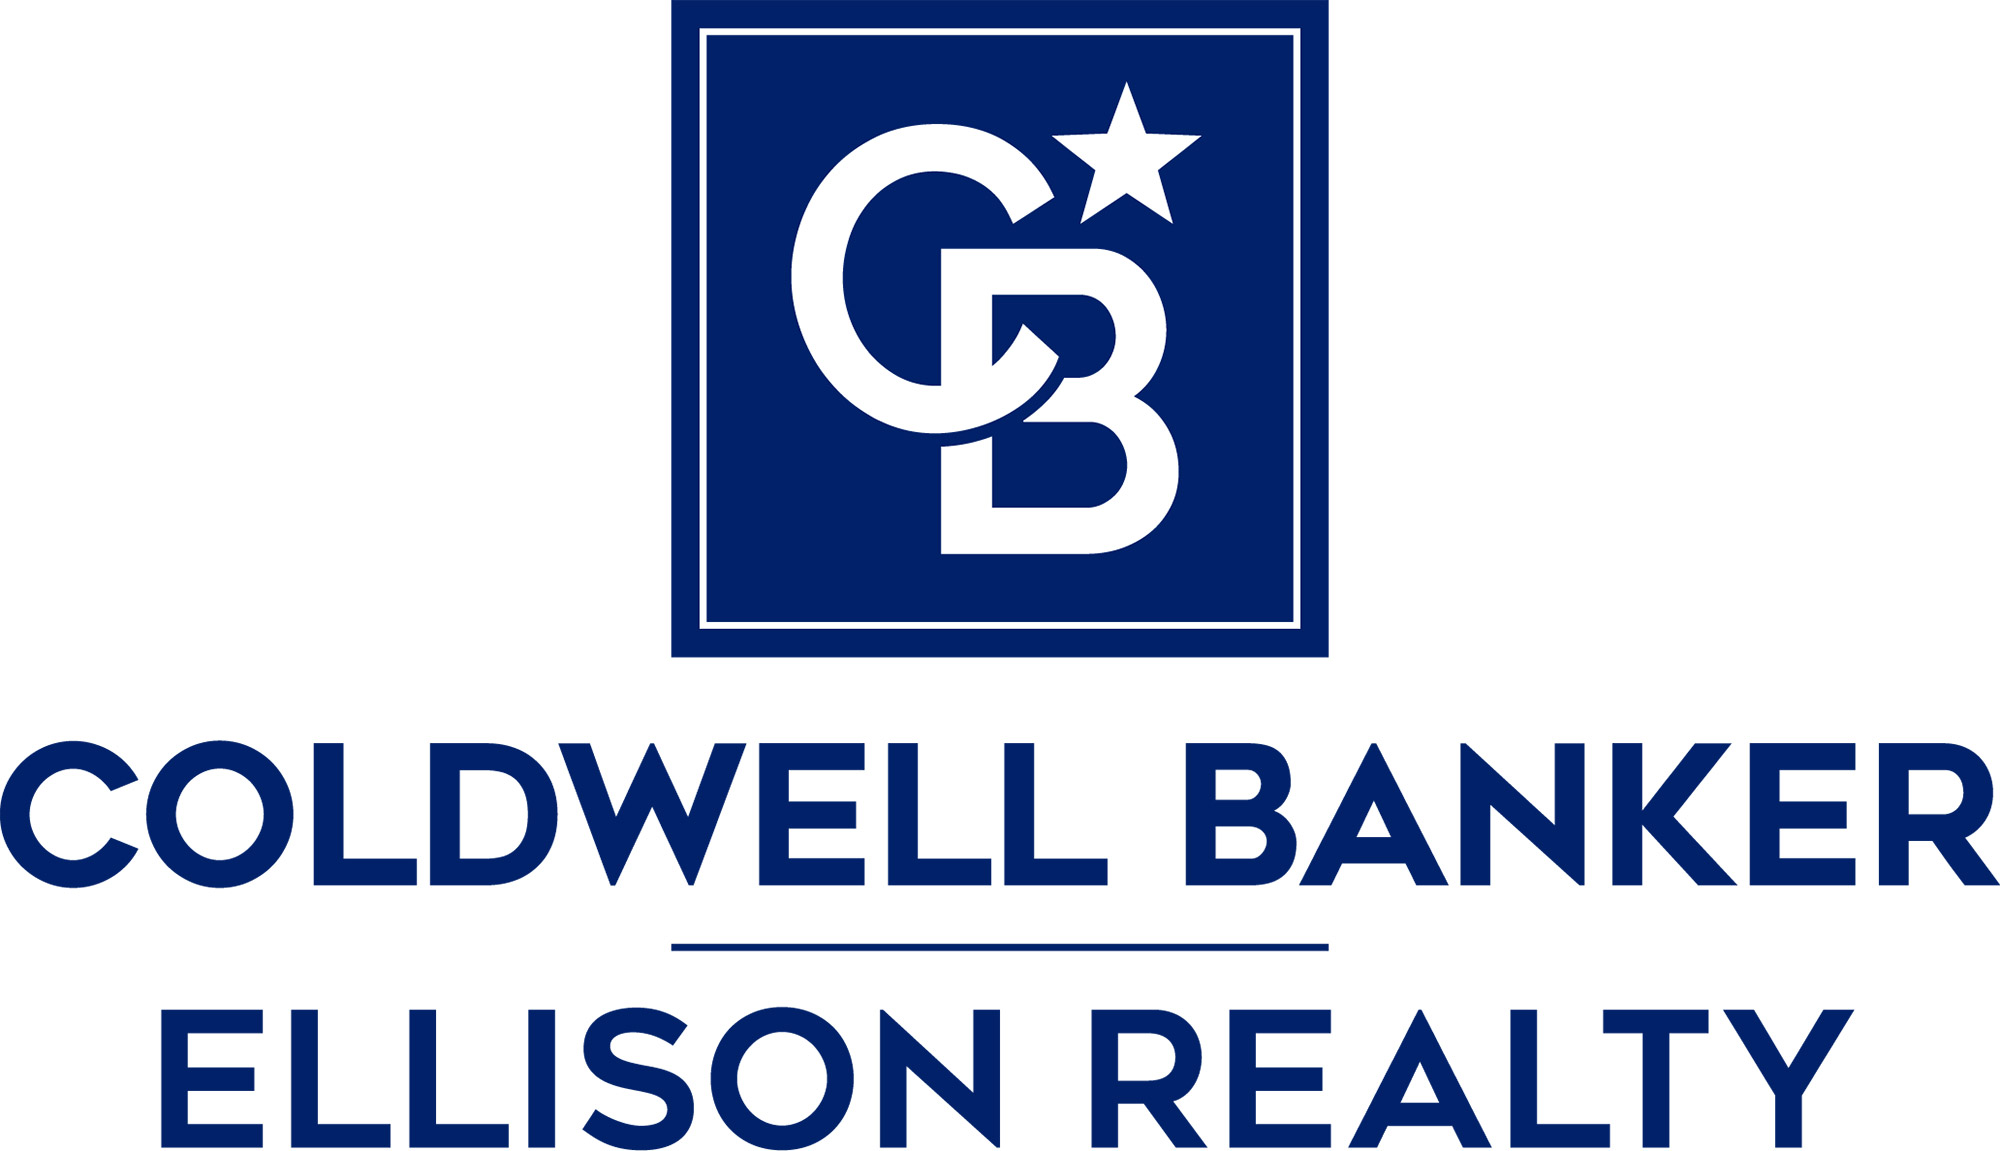 Janice Hart - Coldwell Banker Ellison Realty